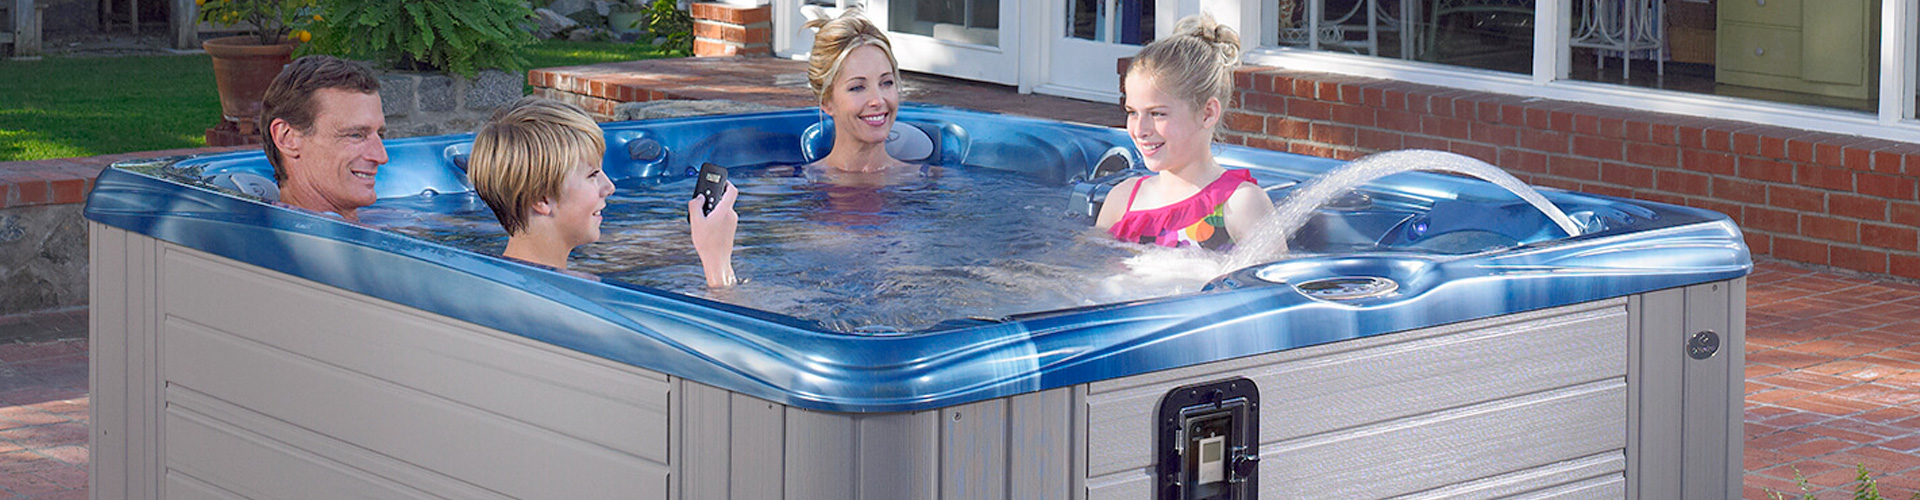 Spa Store Near Steamboat Springs, Shares 3 Benefits of Hot Tub Ownership